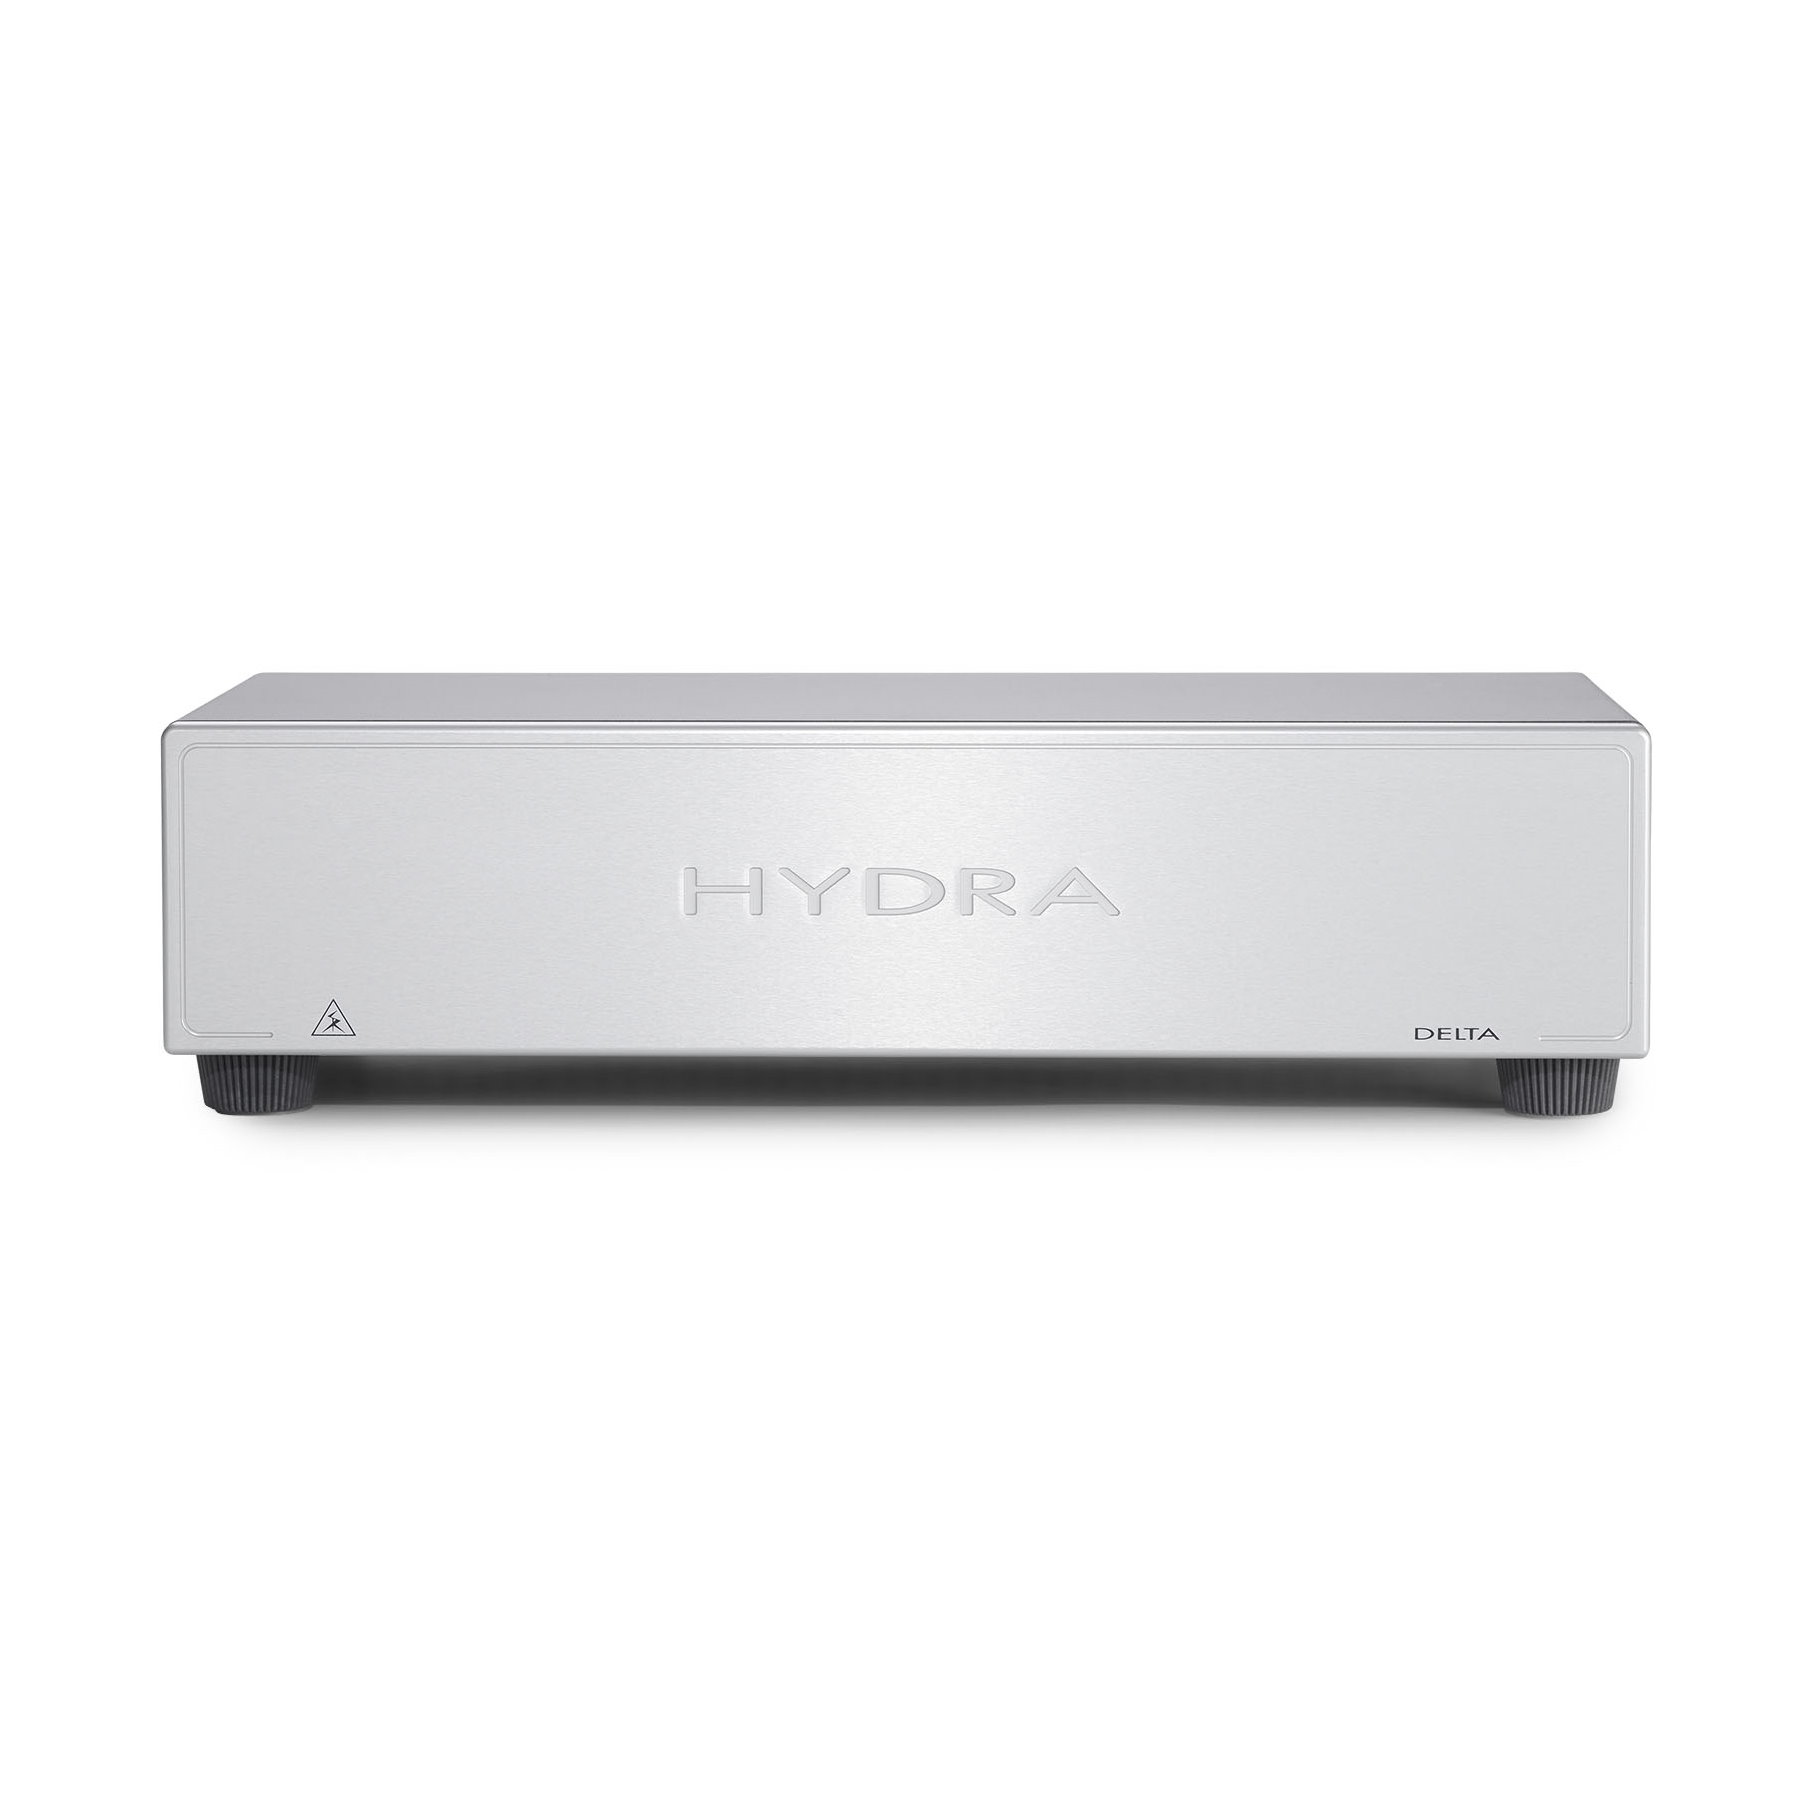 Shunyata Hydra Delta 6 Powerline Conditioner